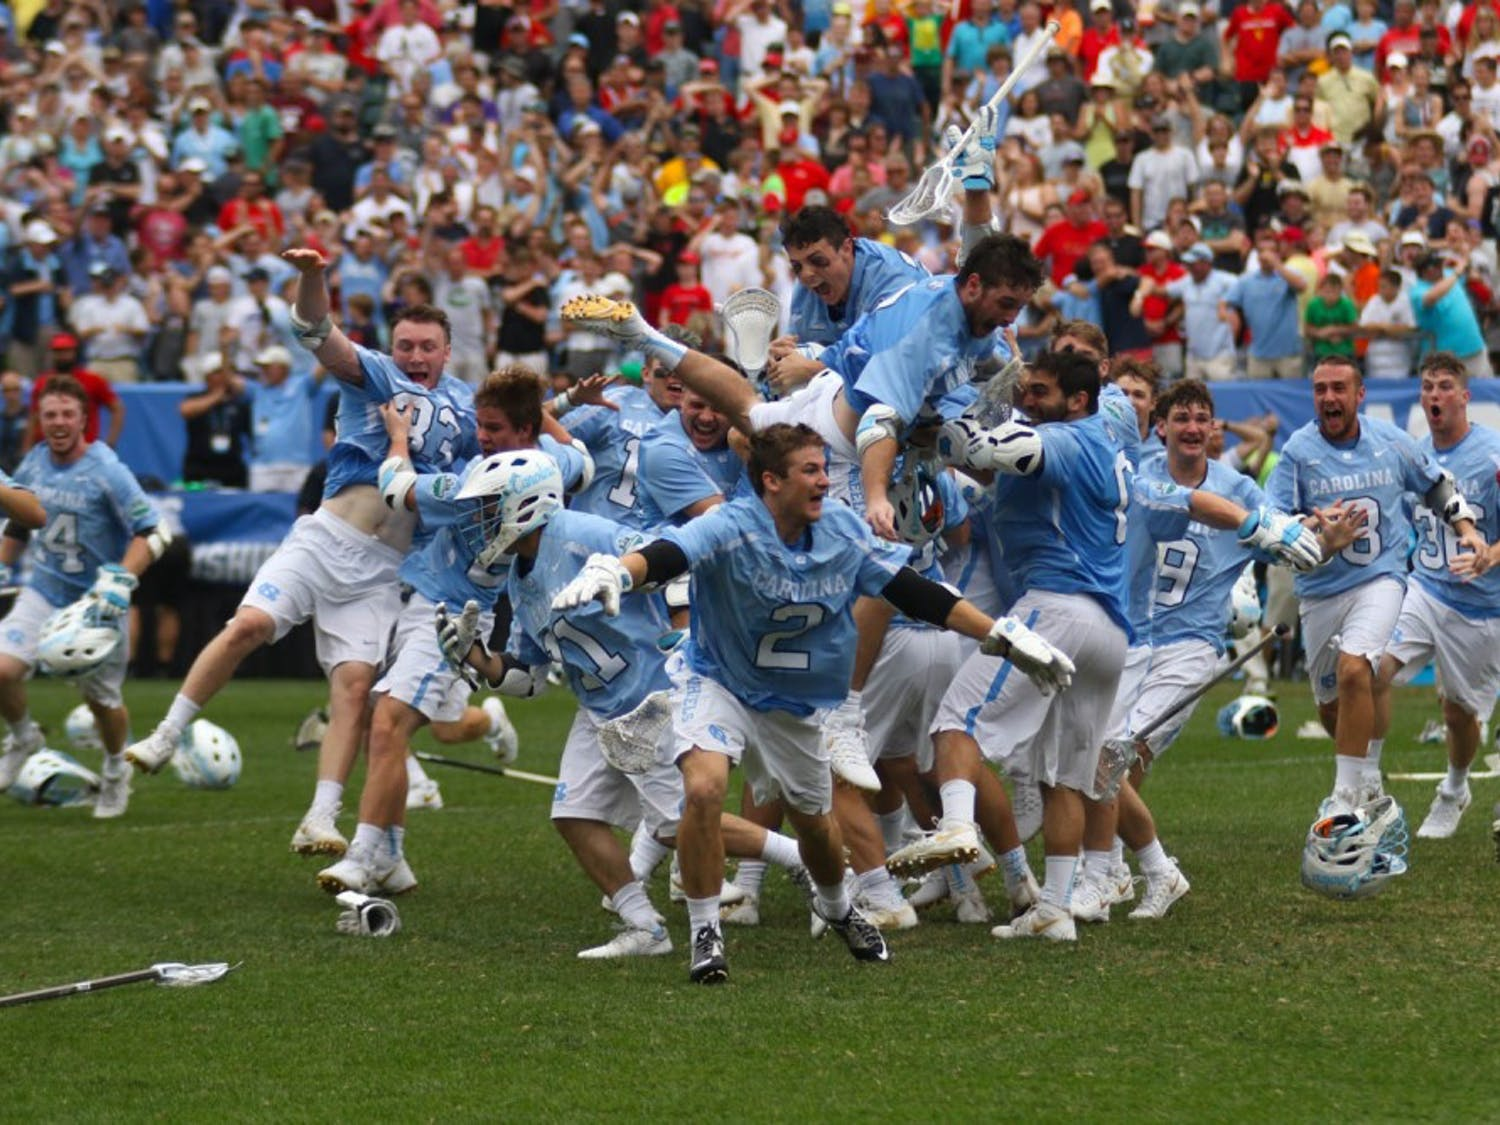 The unseeded North Carolina men's lacrosse team defeated No. 1 Maryland 14-13 in overtime to claim the program's first national championship since 1993 on Monday at Lincoln Financial Field in Philadelphia.